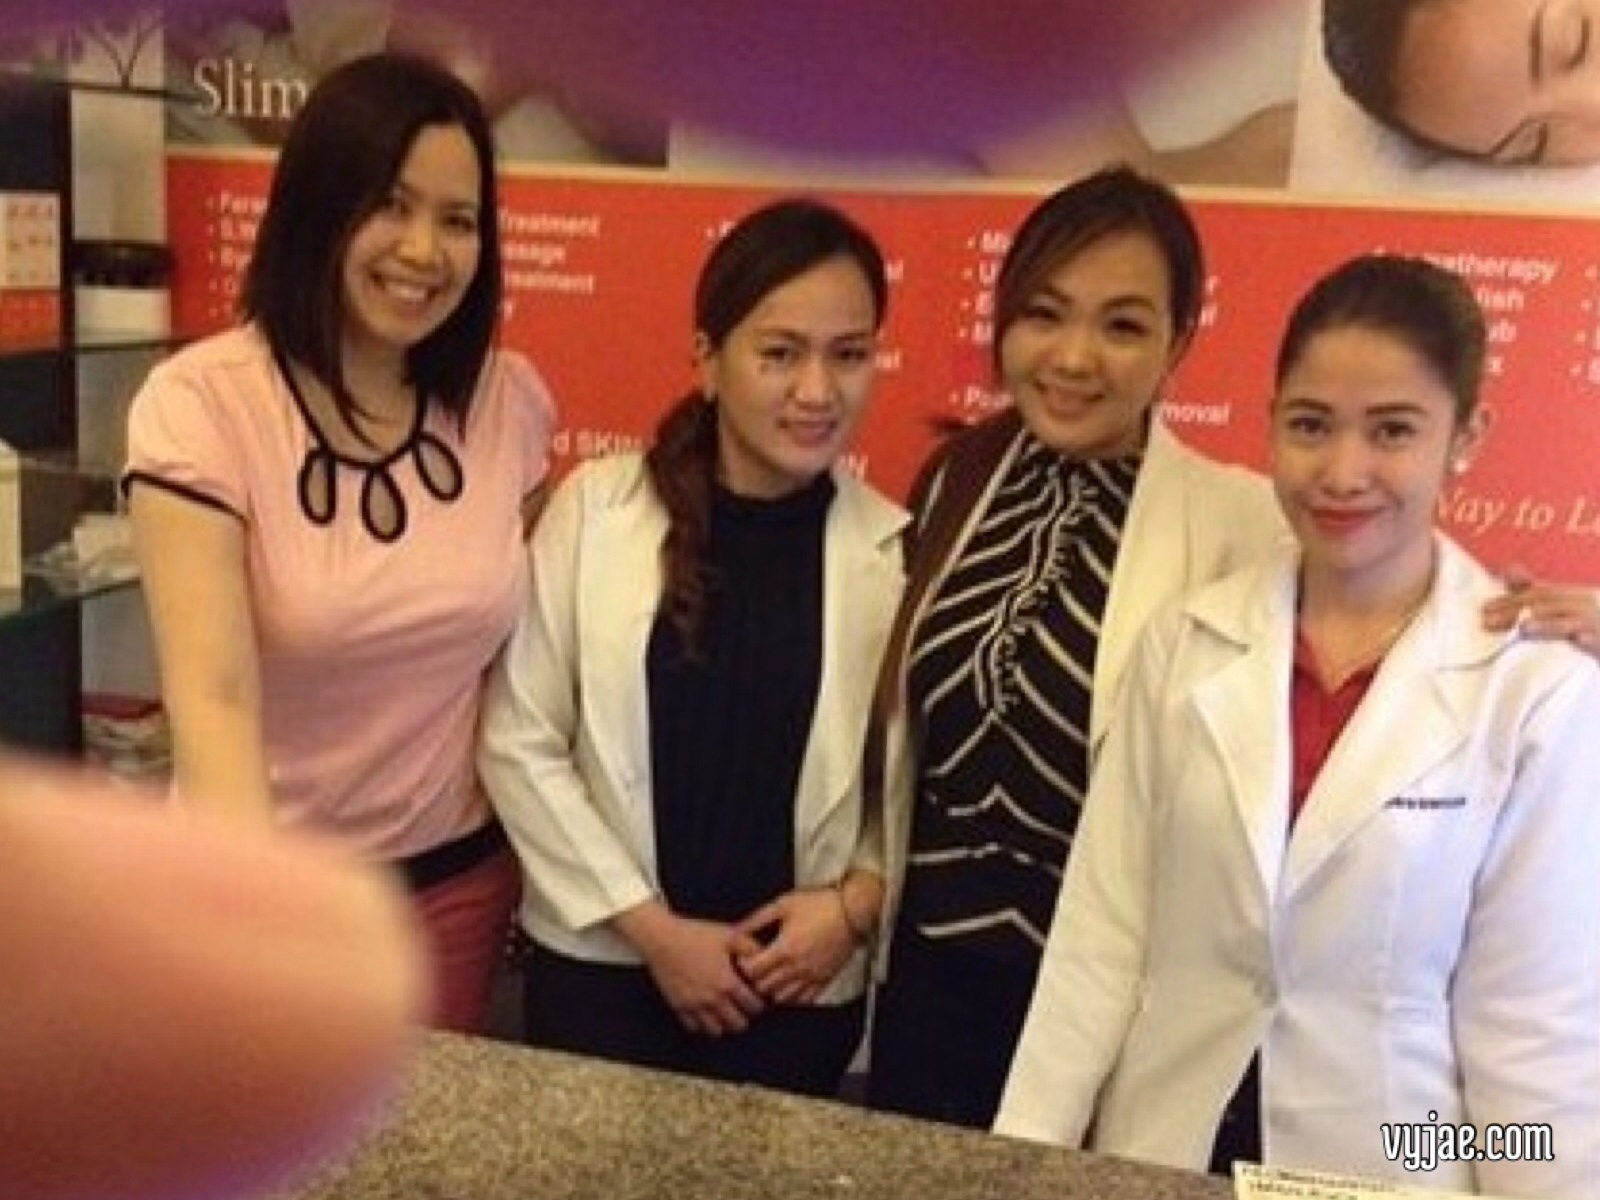 With Bioessence friendly staff: Quennie,